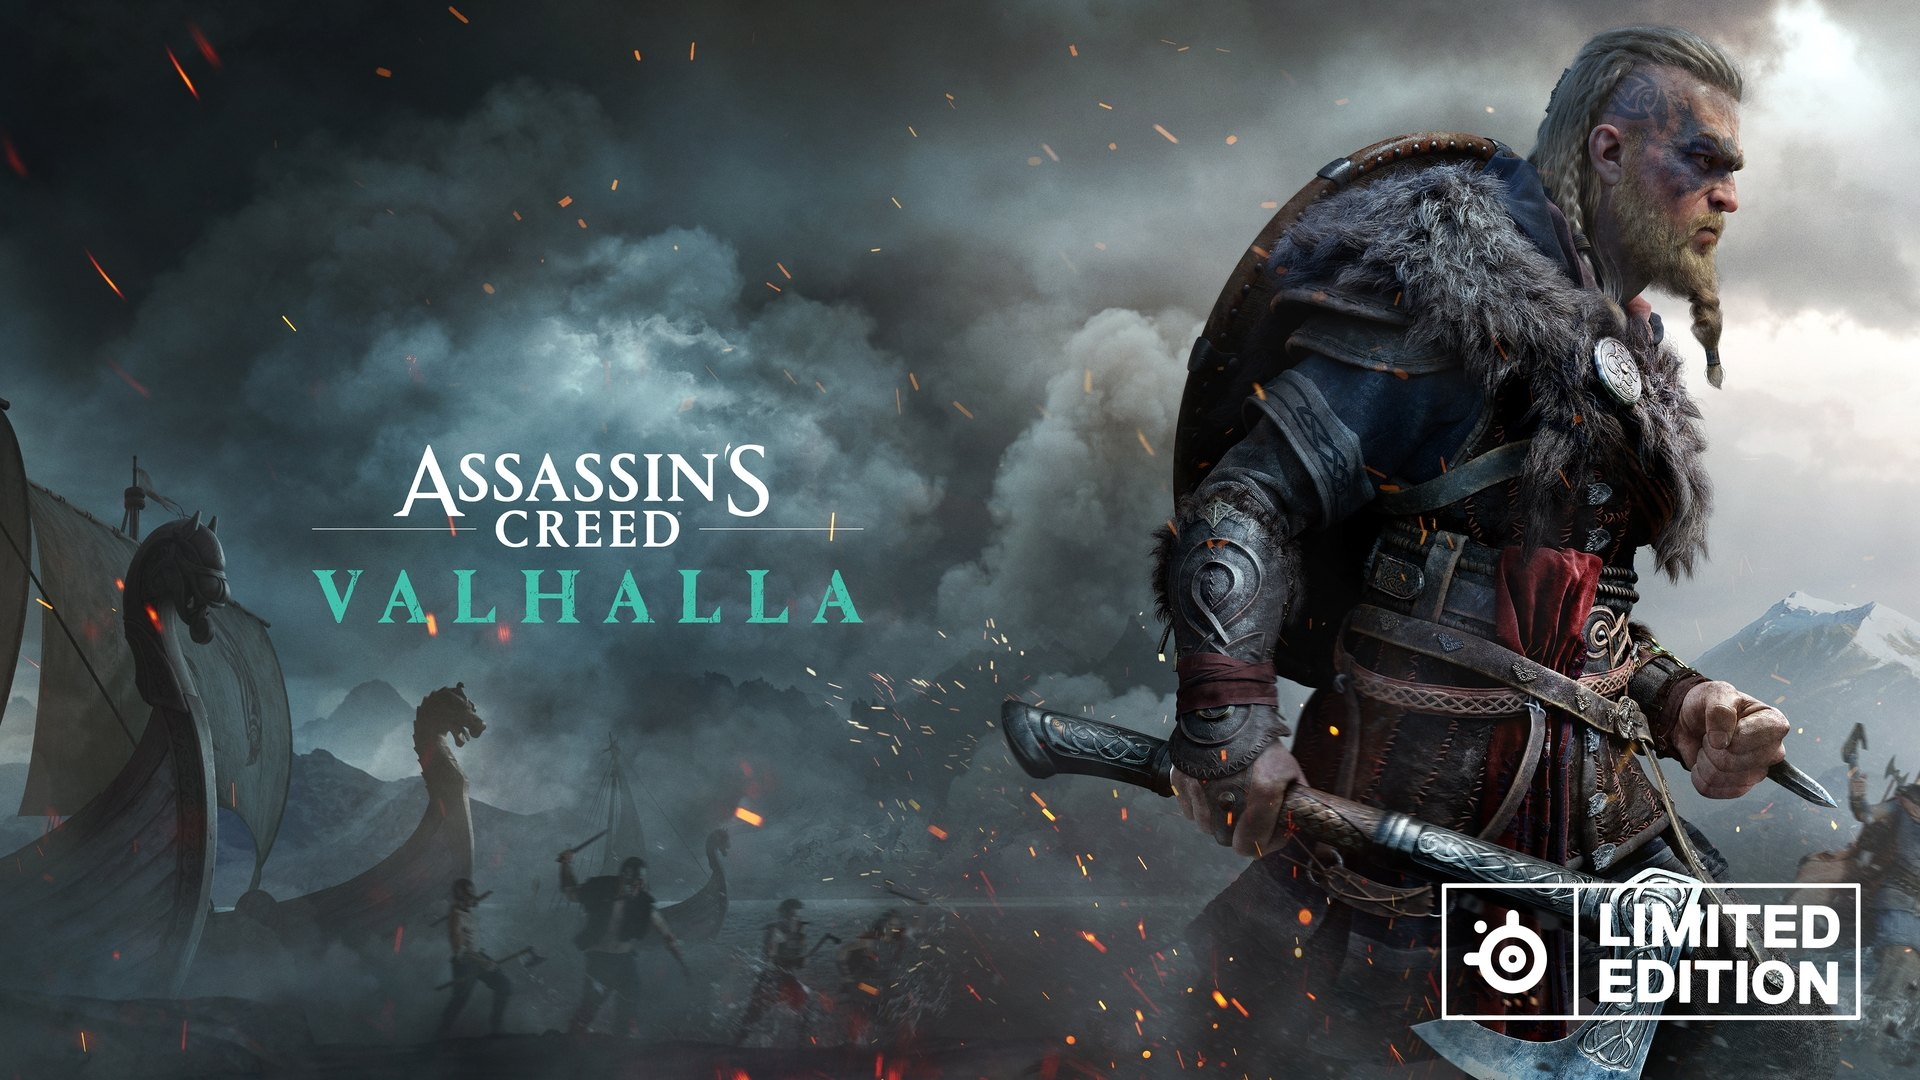 Assassin's Creed Valhalla image hero character wielding weapon